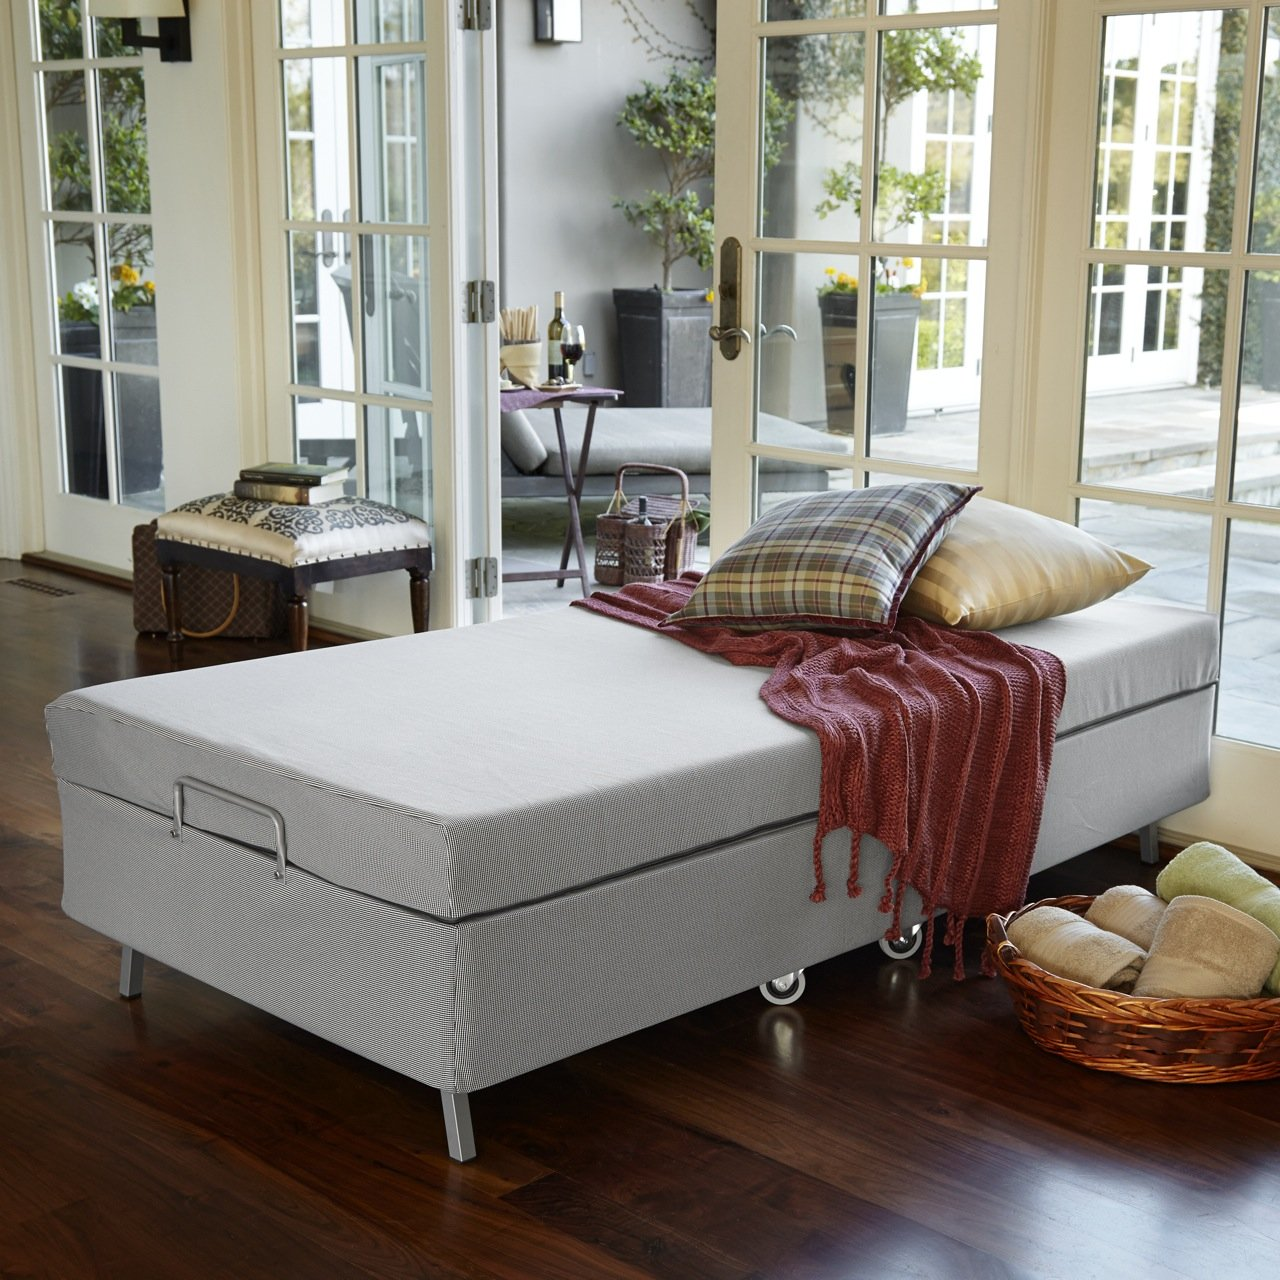 Top 10 Best Beds (2020 Reviews & Buying Guide) 1